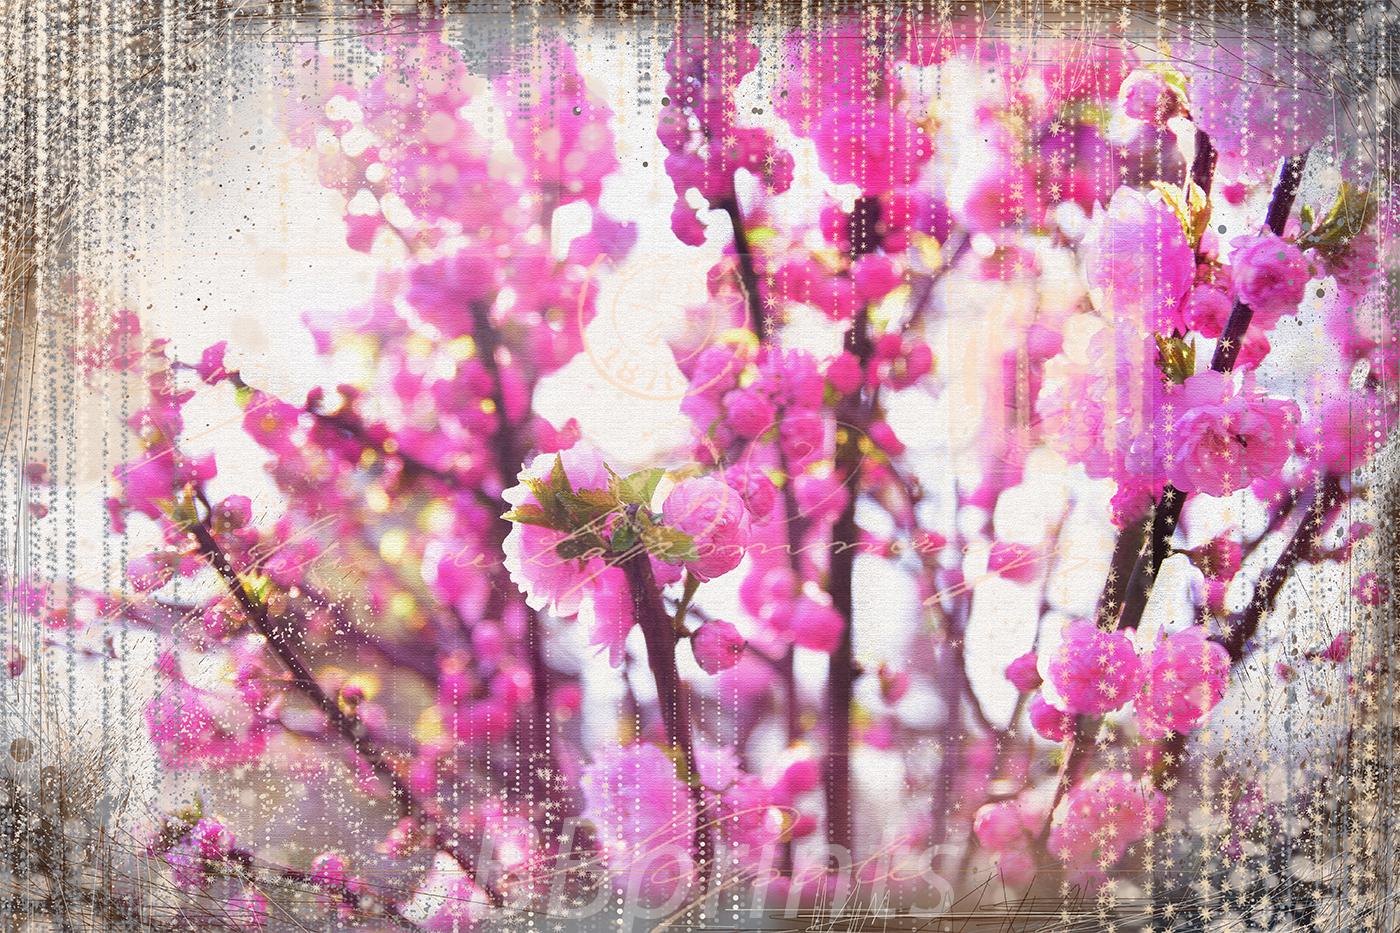 Nature photo, floral photo, spring photo example image 1